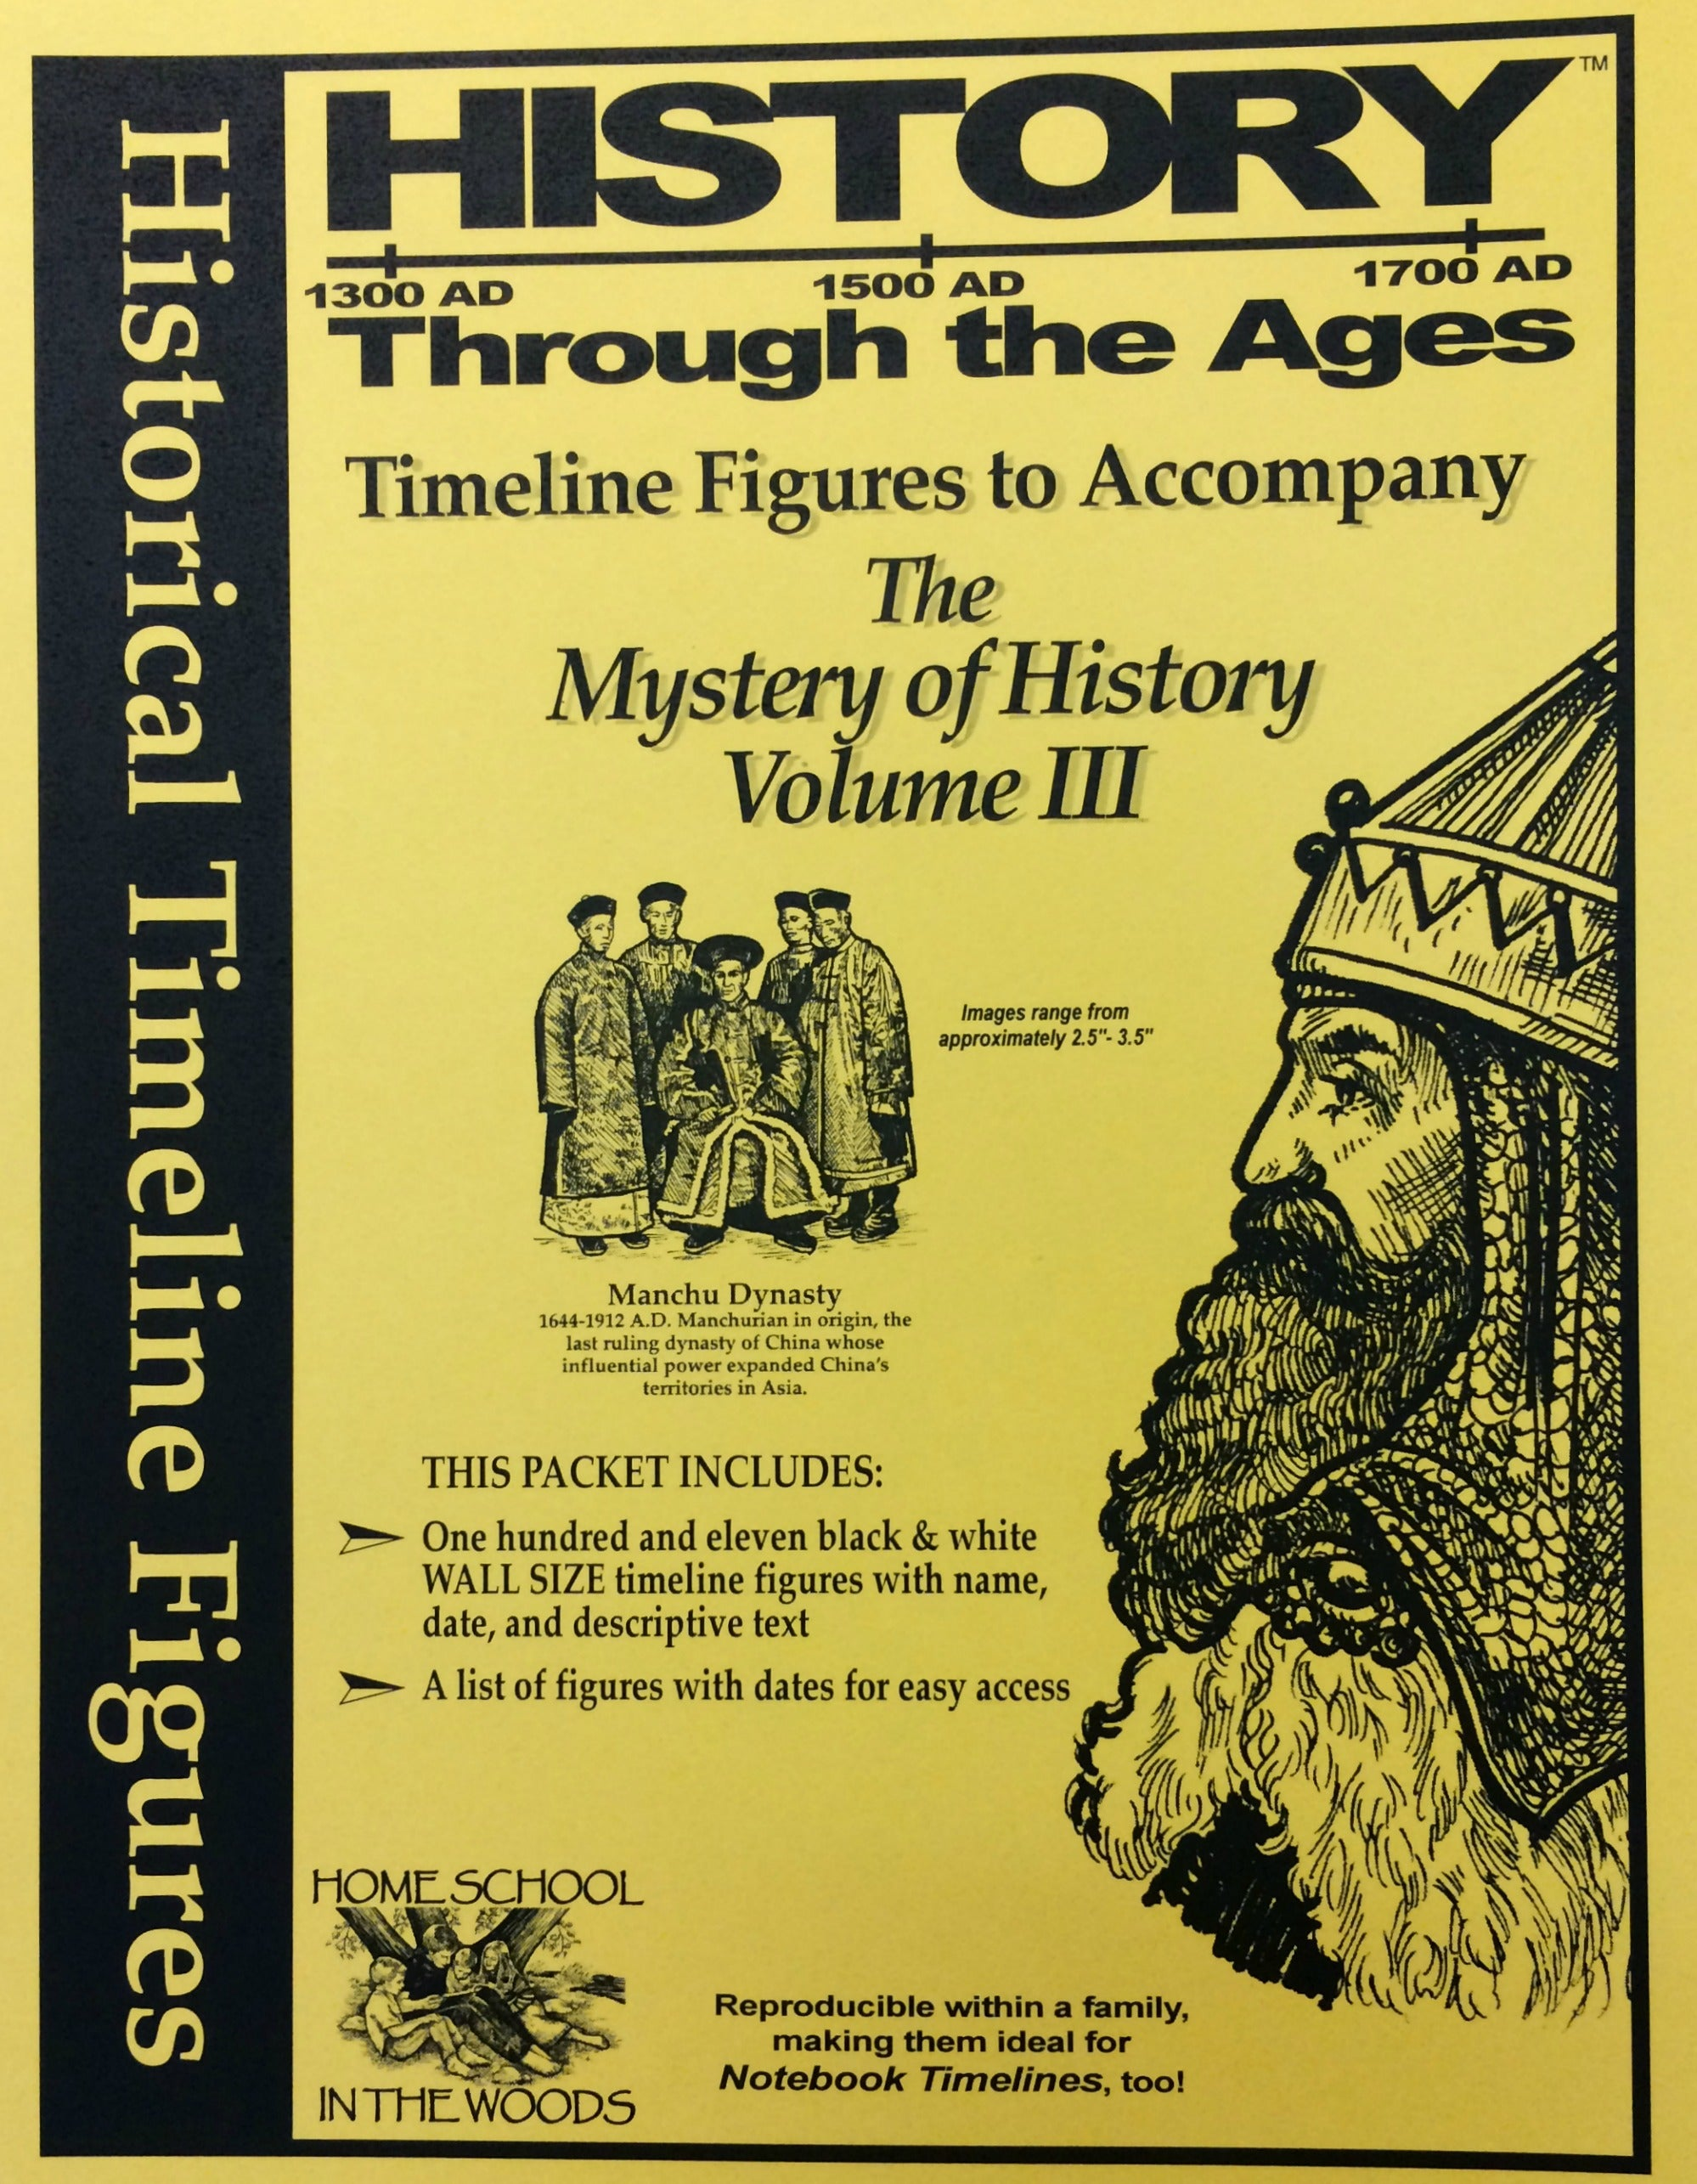 History Through the Ages Timeline: The Mystery of History Volume III